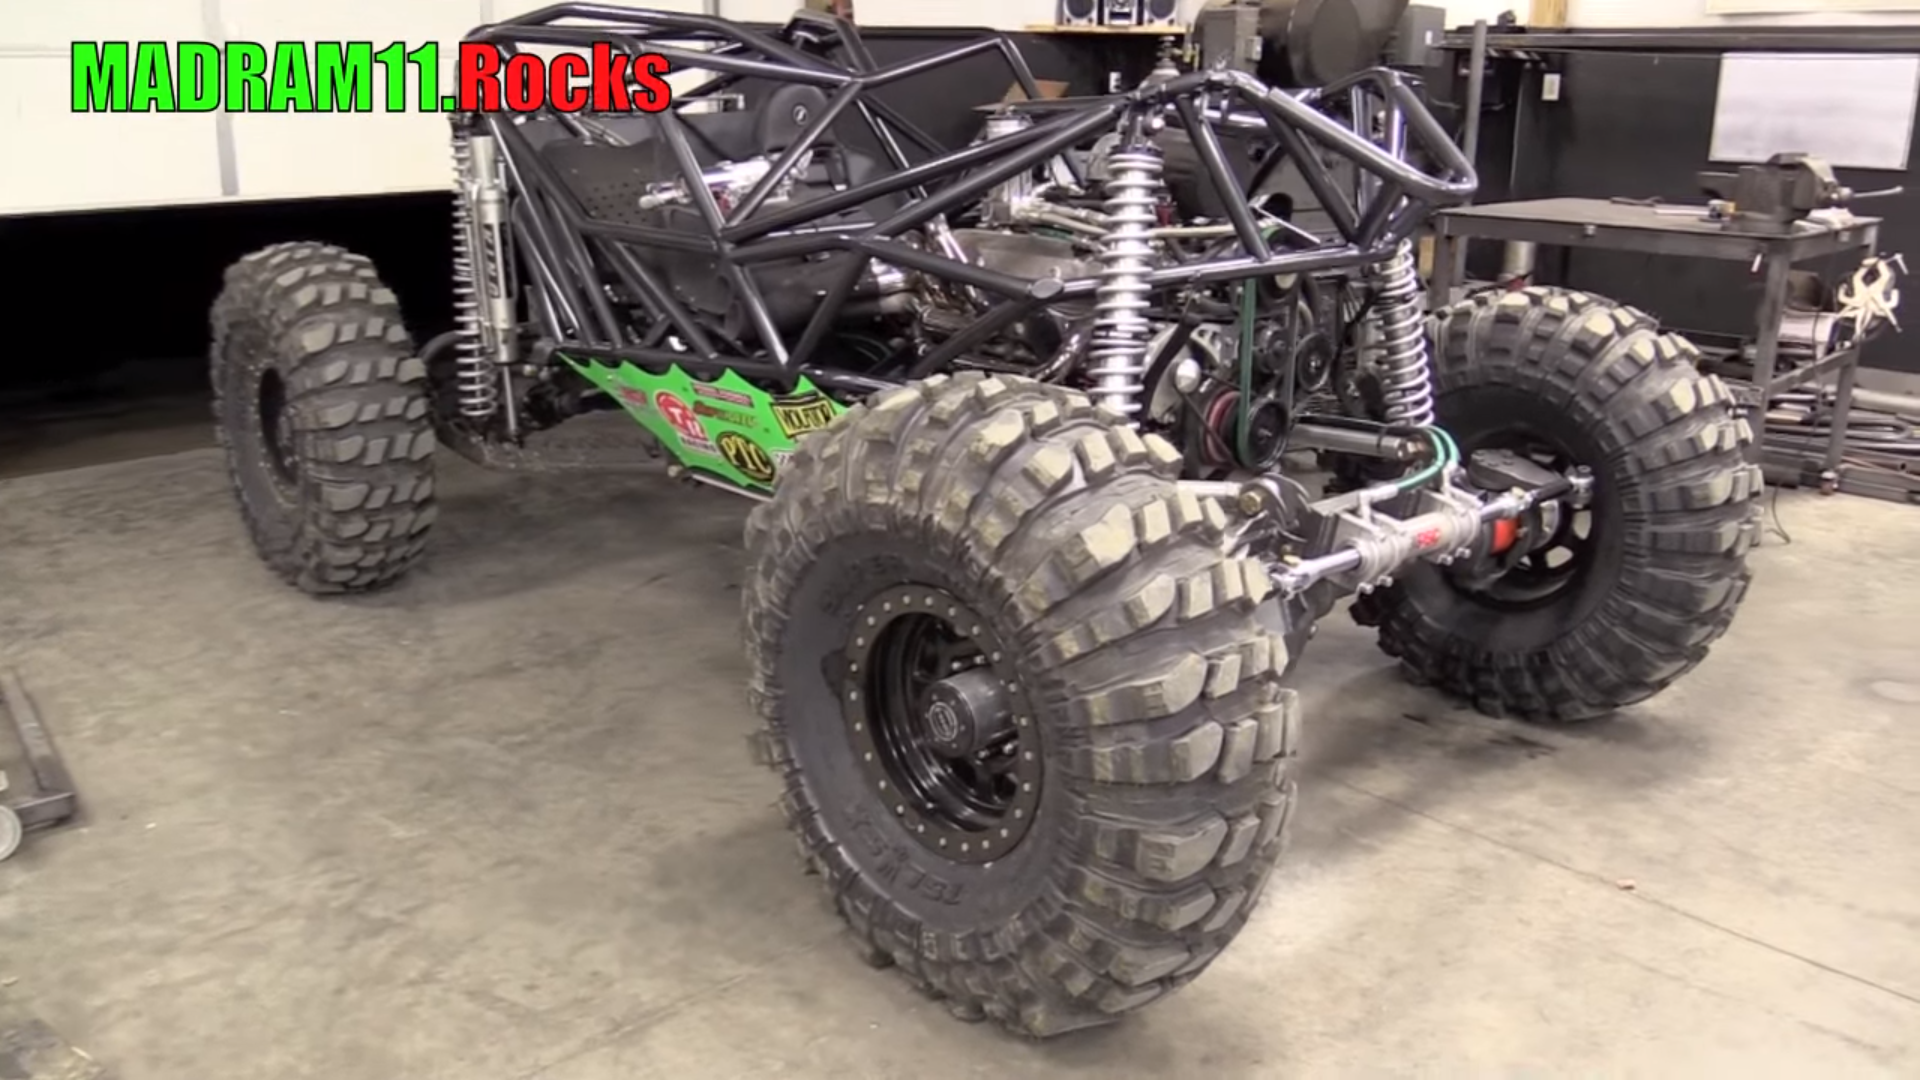 Notice how the Front end doesn't have all of the King Shocks installed yet.  PHOTO: YouTube MadRam11